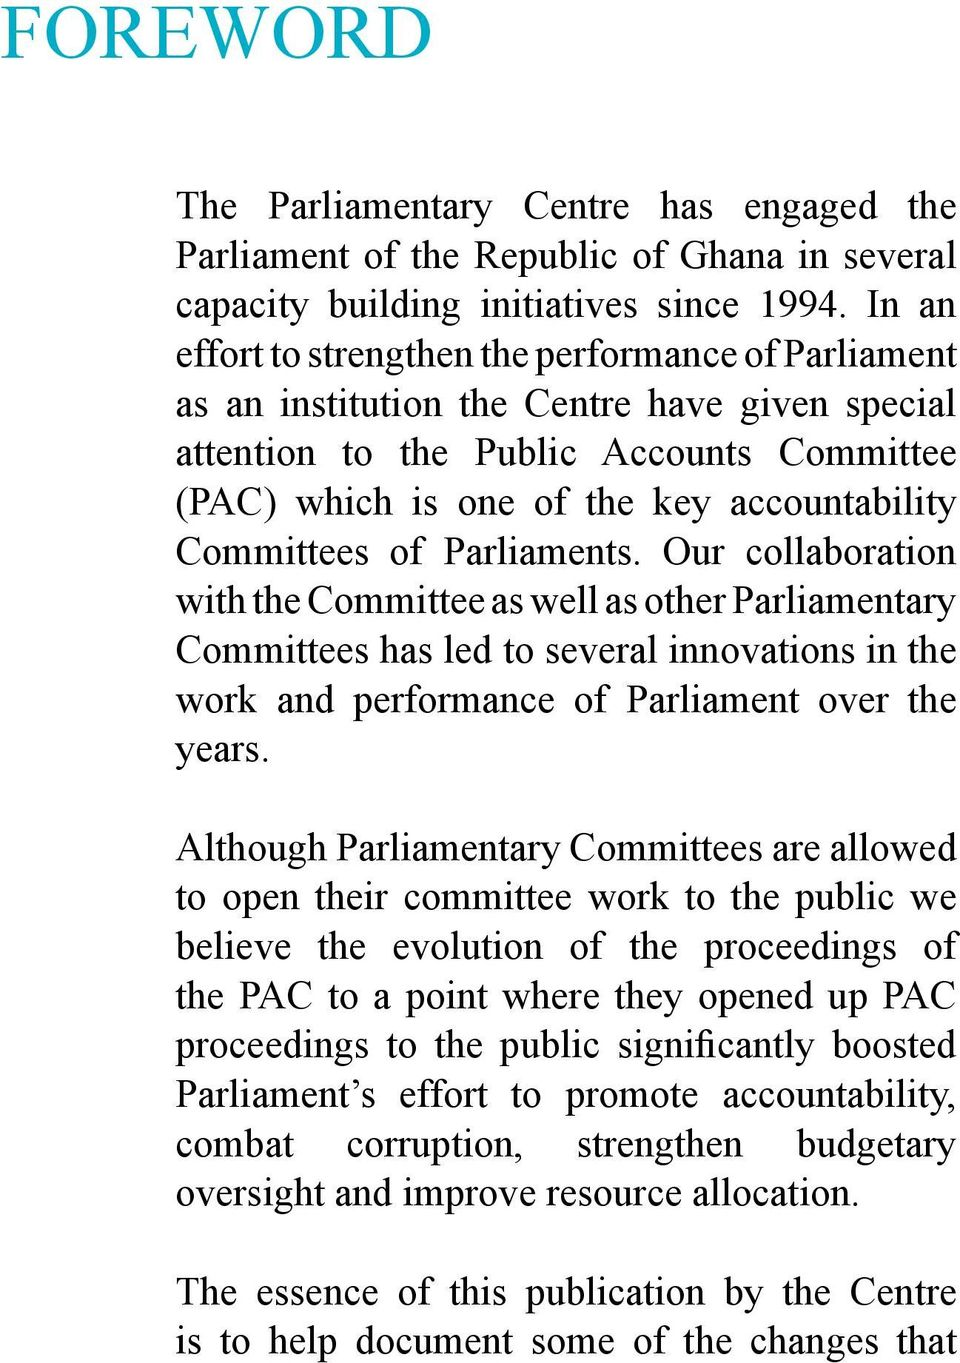 Committees of Parliaments. Our collaboration with the Committee as well as other Parliamentary Committees has led to several innovations in the work and performance of Parliament over the years.